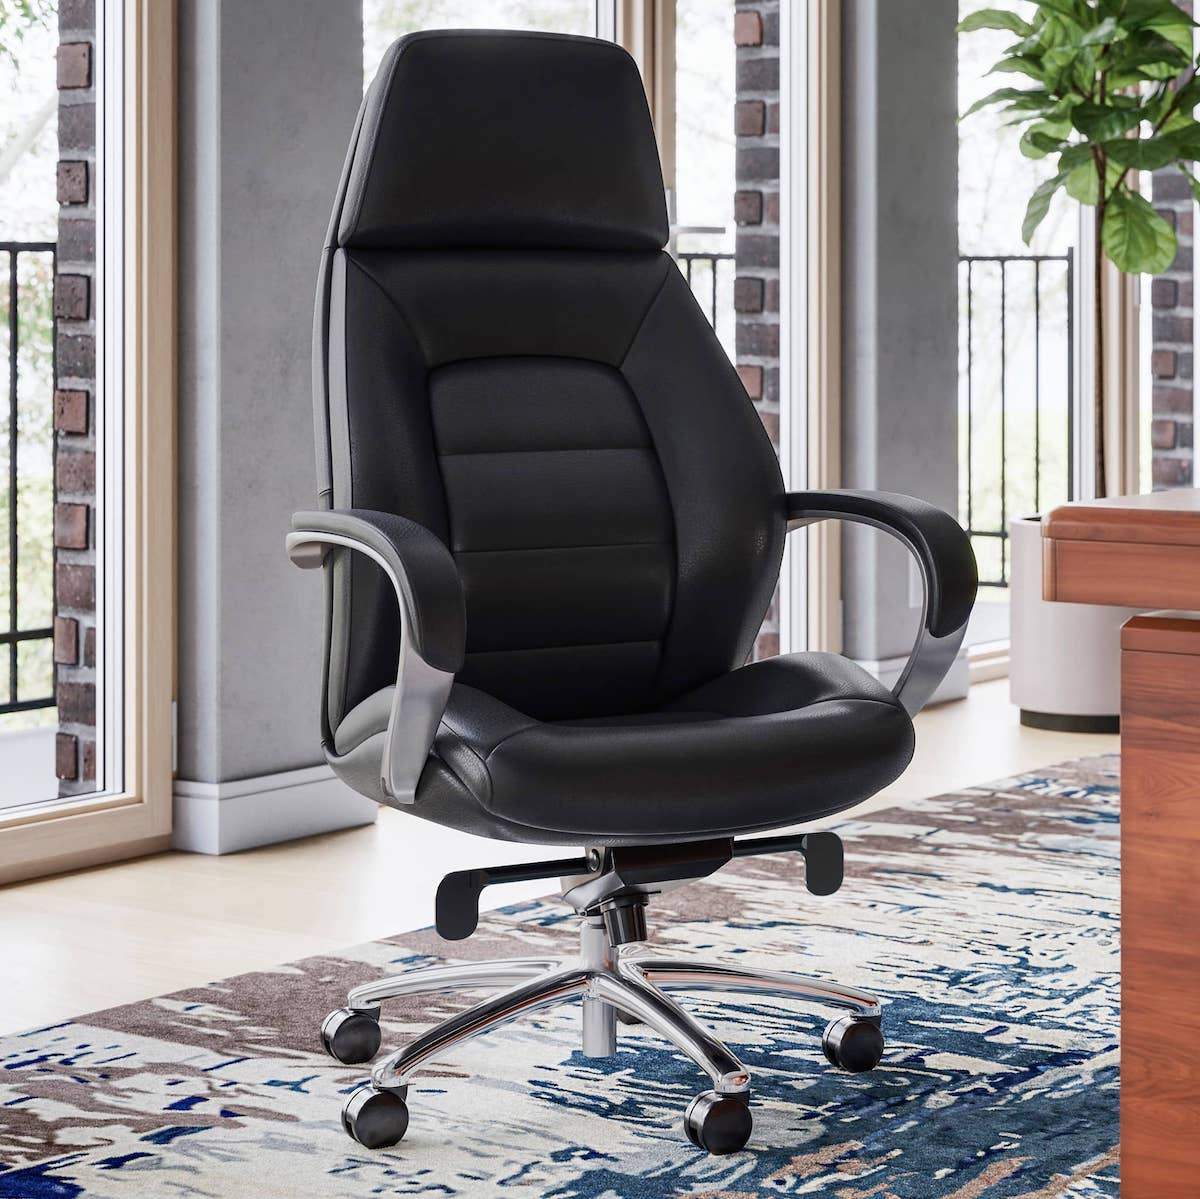 GATES LEATHER - a computer chair for long hours of sitting